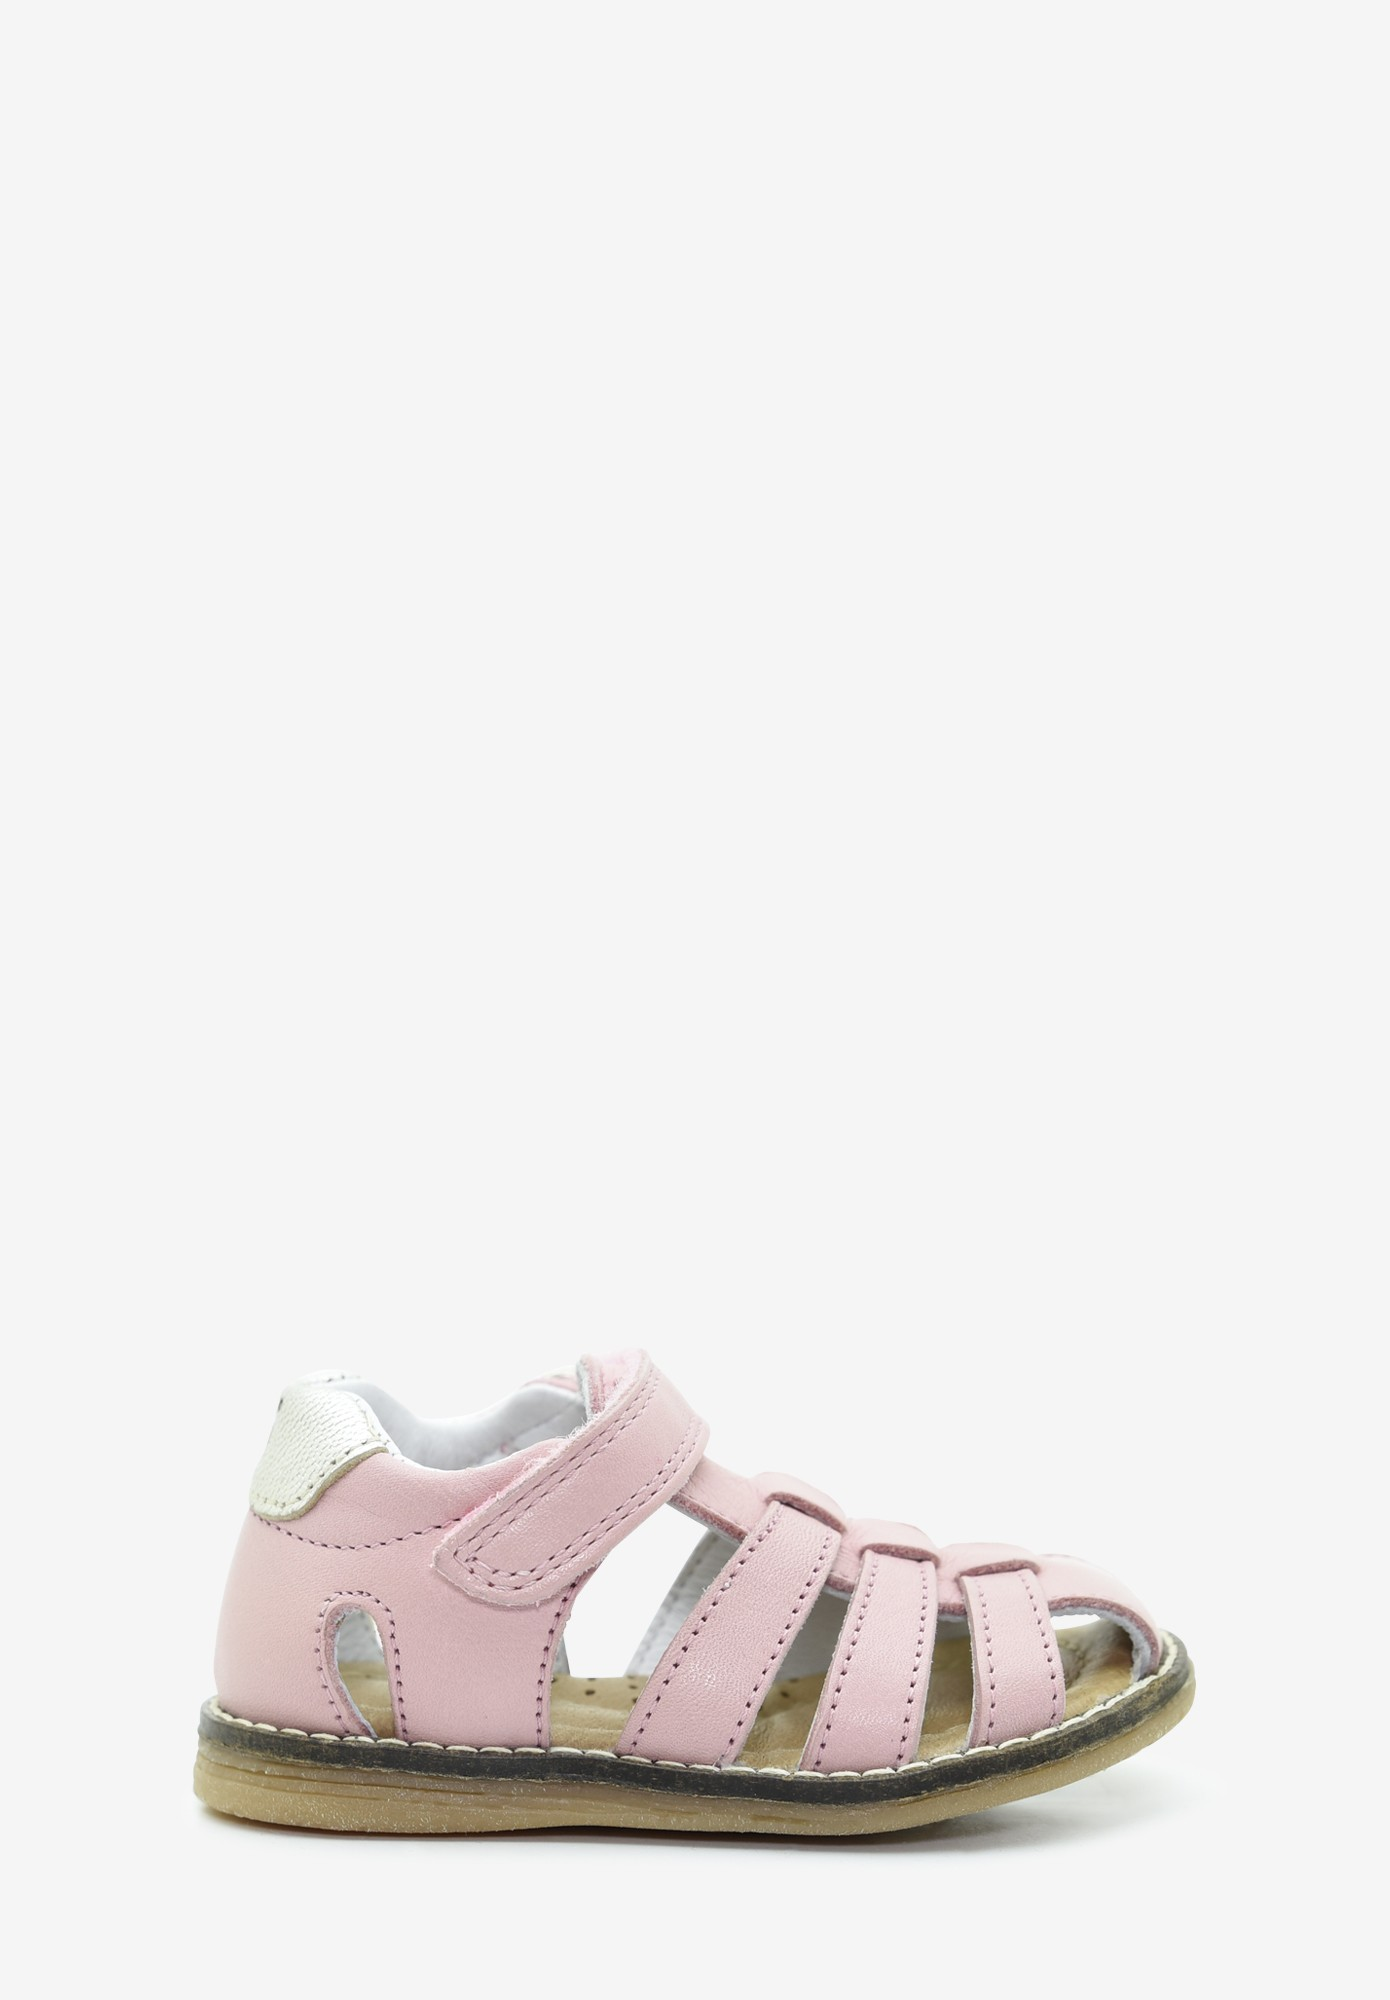 Baby shoes - Sandals - Girl